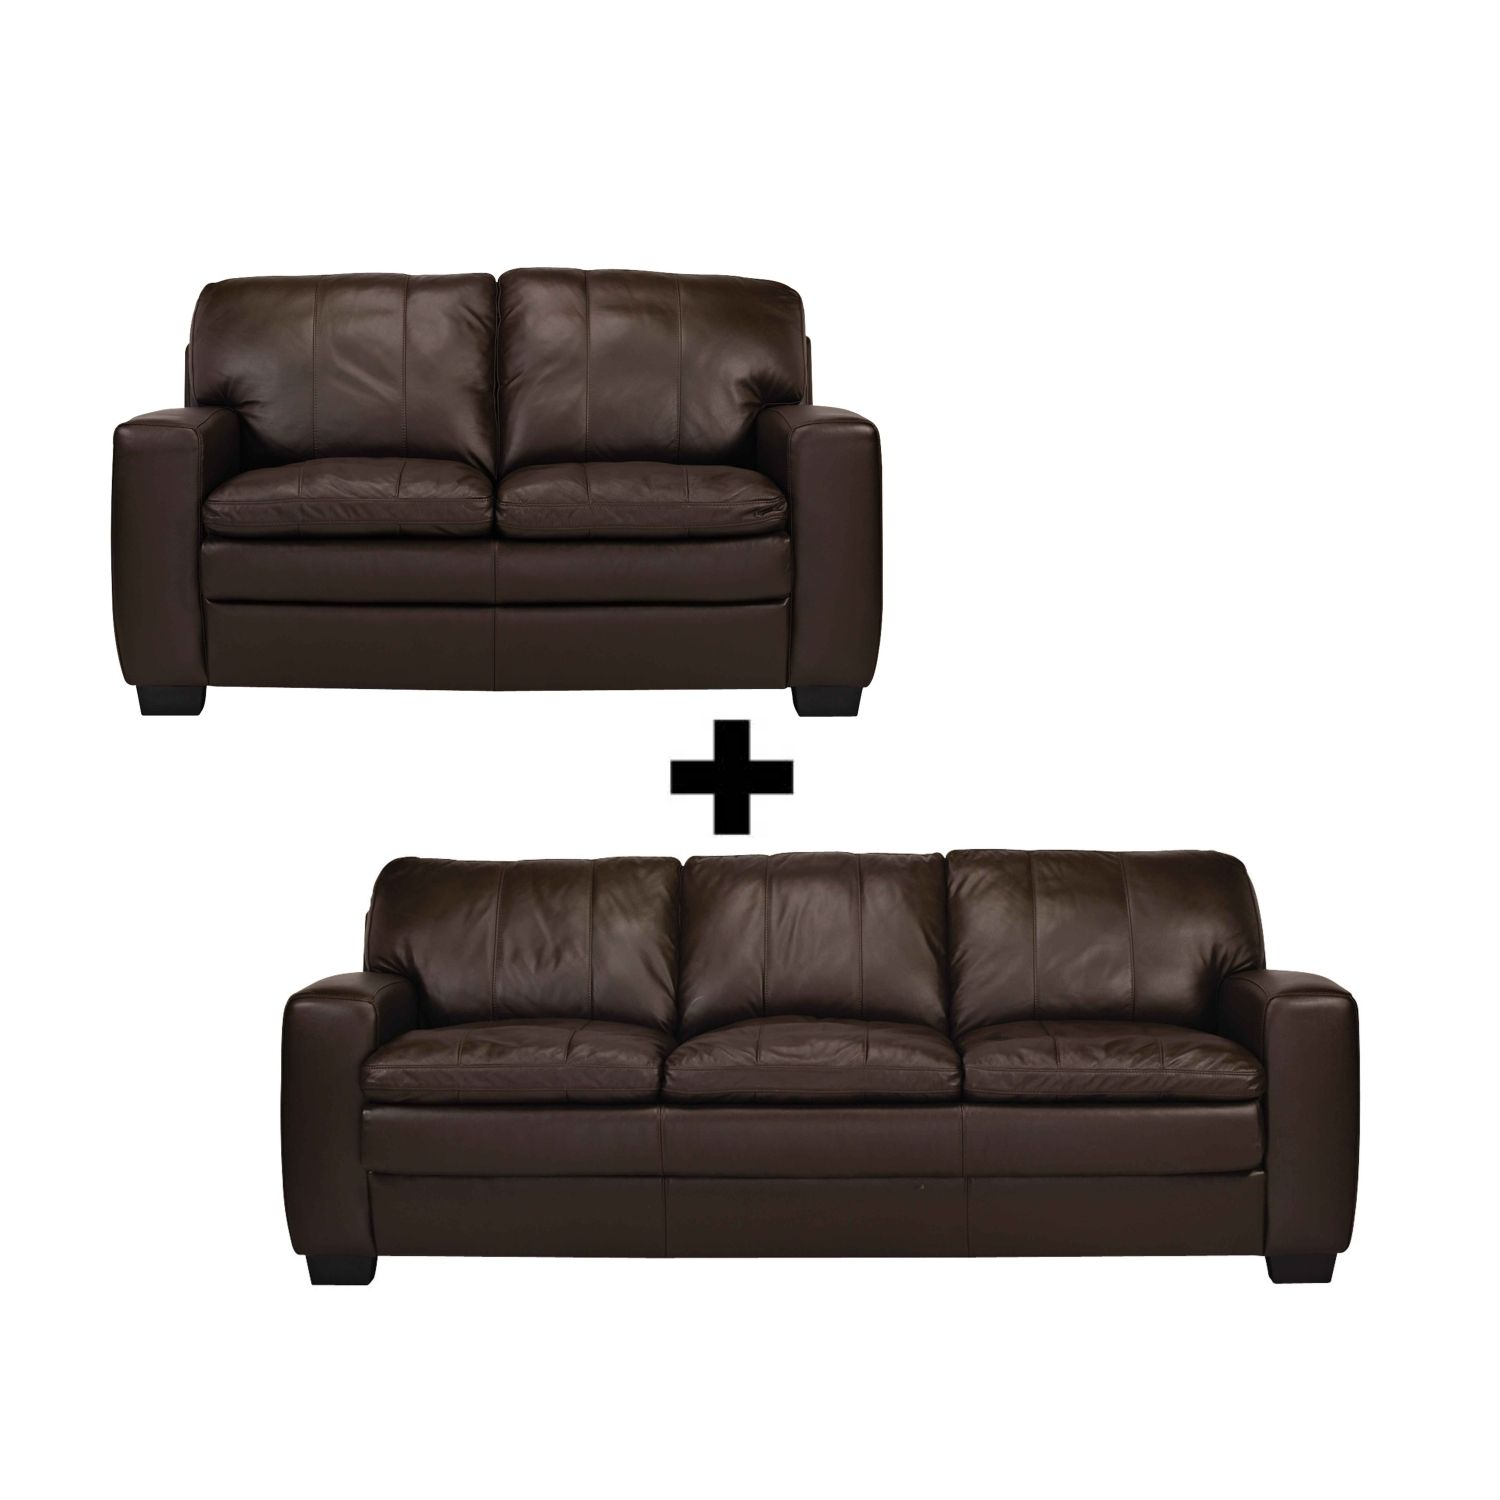 Camden Leather Sofa Package from Domayne Online | Domayne ...